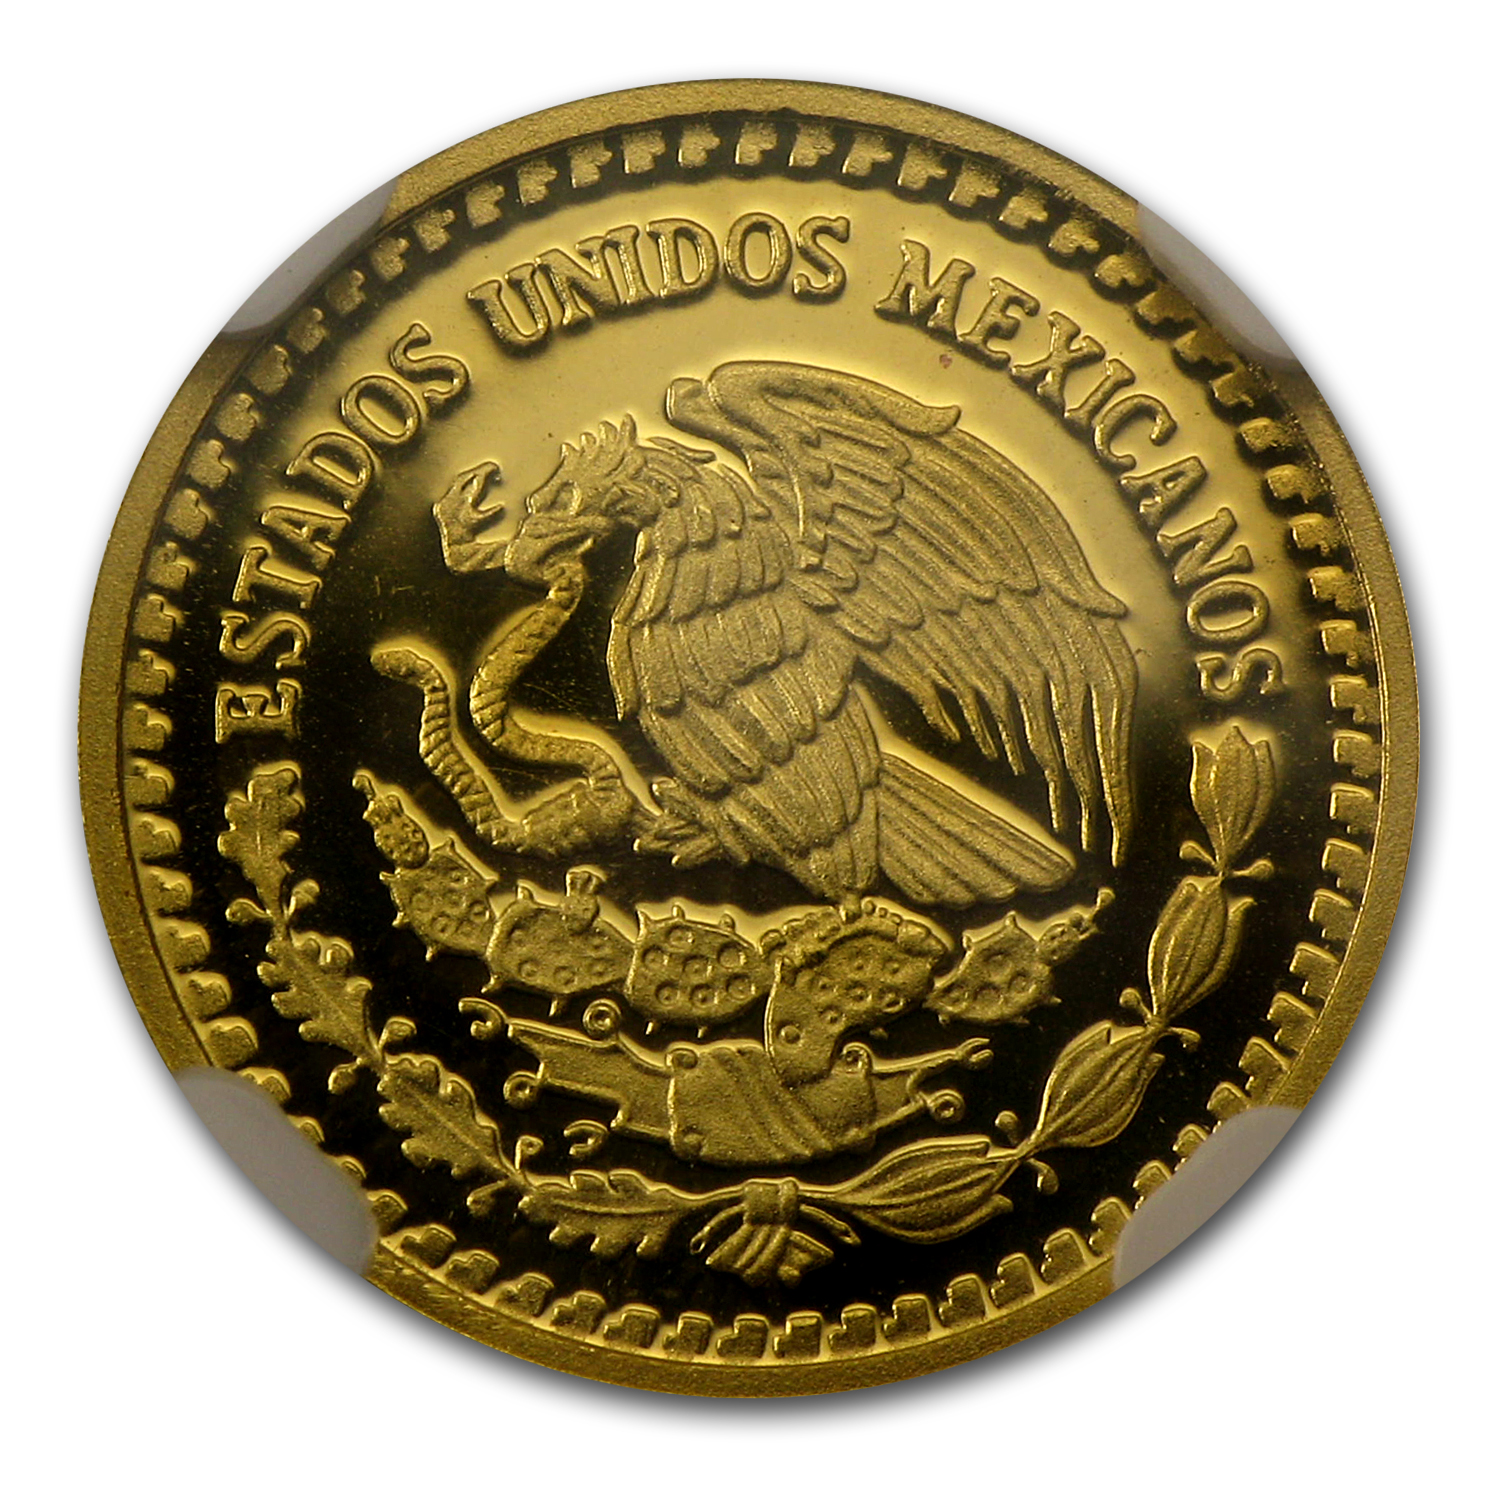 2011 Mexico 1/10 oz Gold Libertad PF-70 NGC